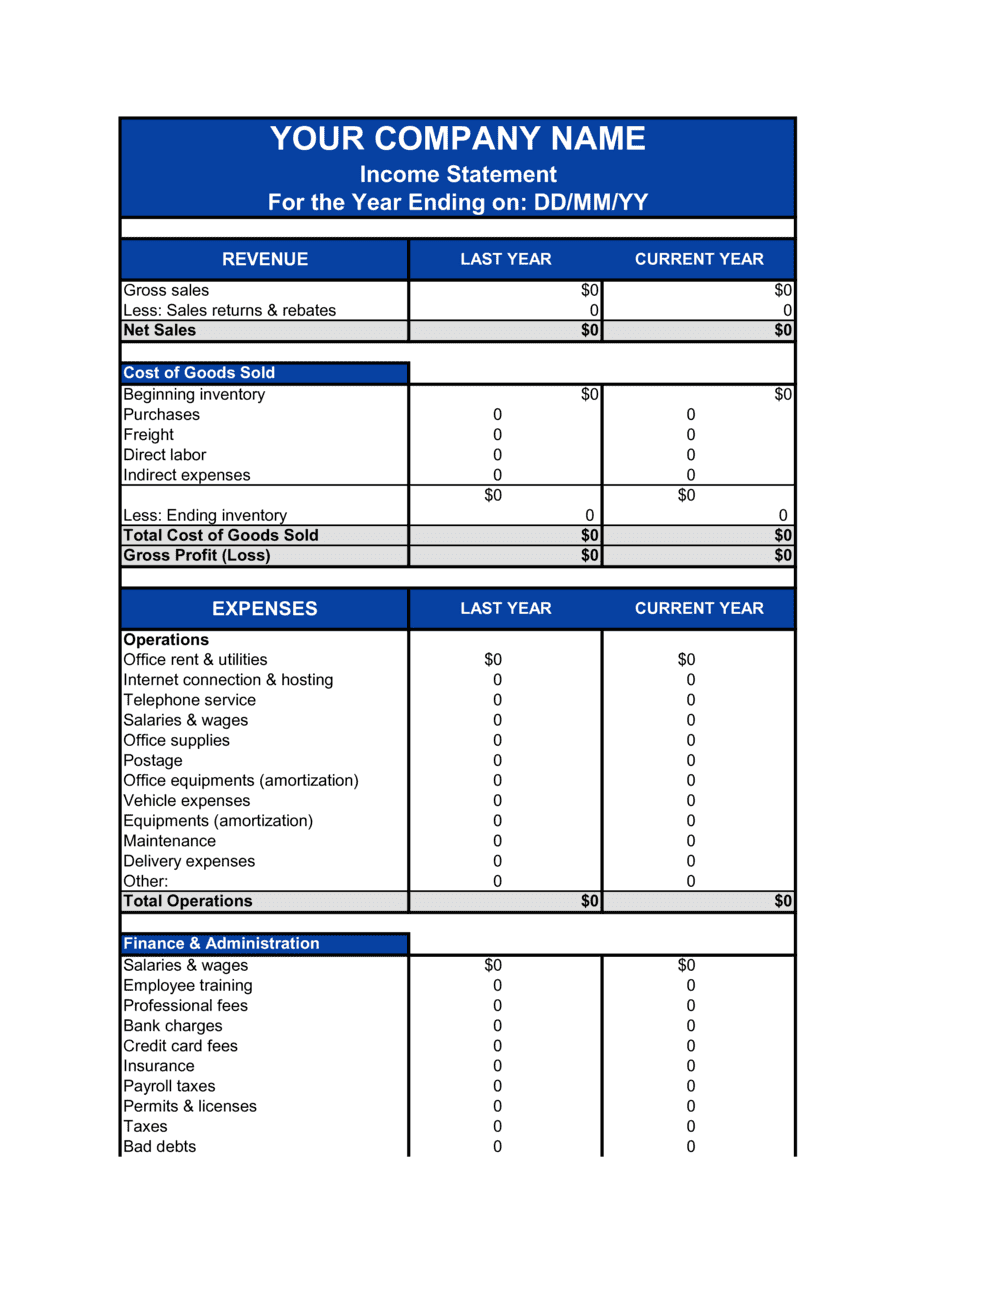 Business-in-a-Box's Income Statement Template